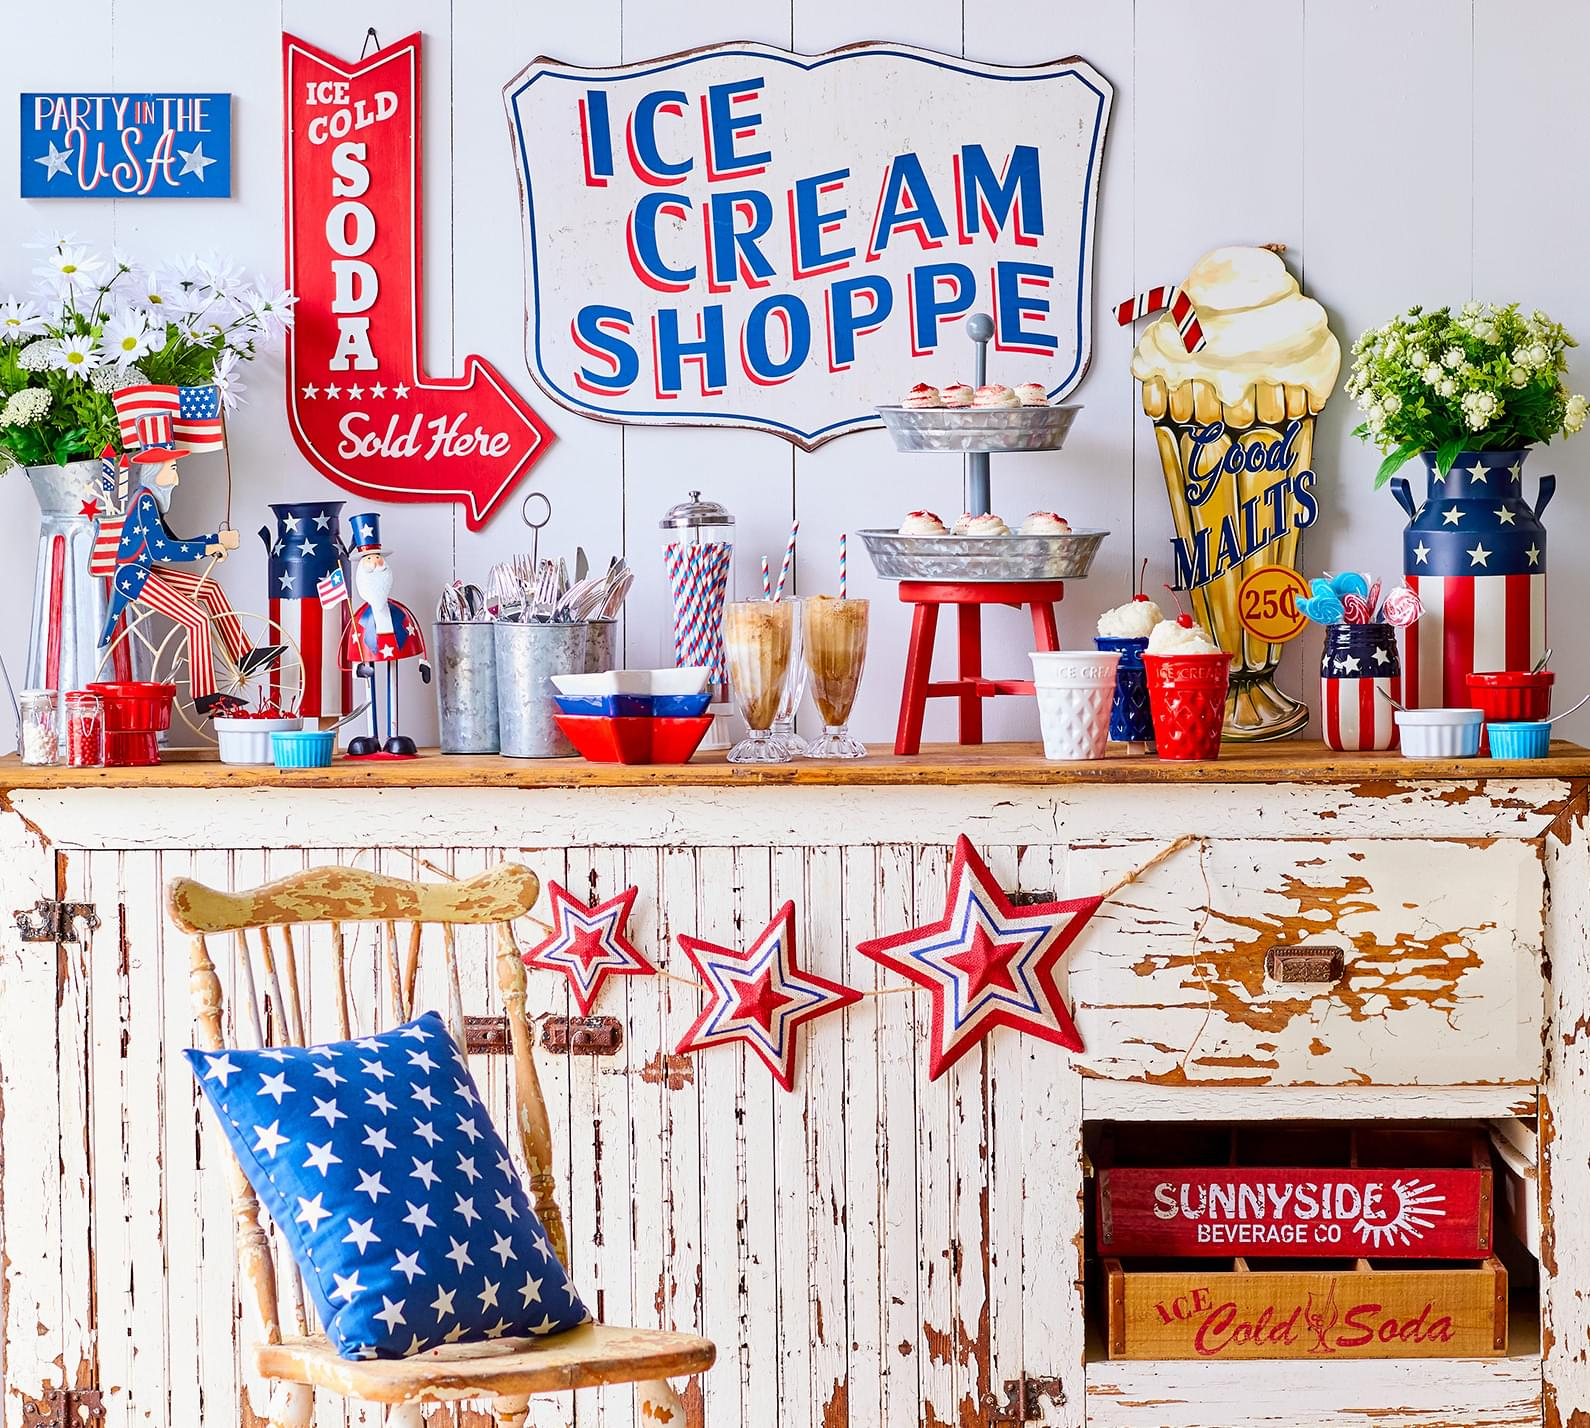 Red, white, & blue décor and accessories